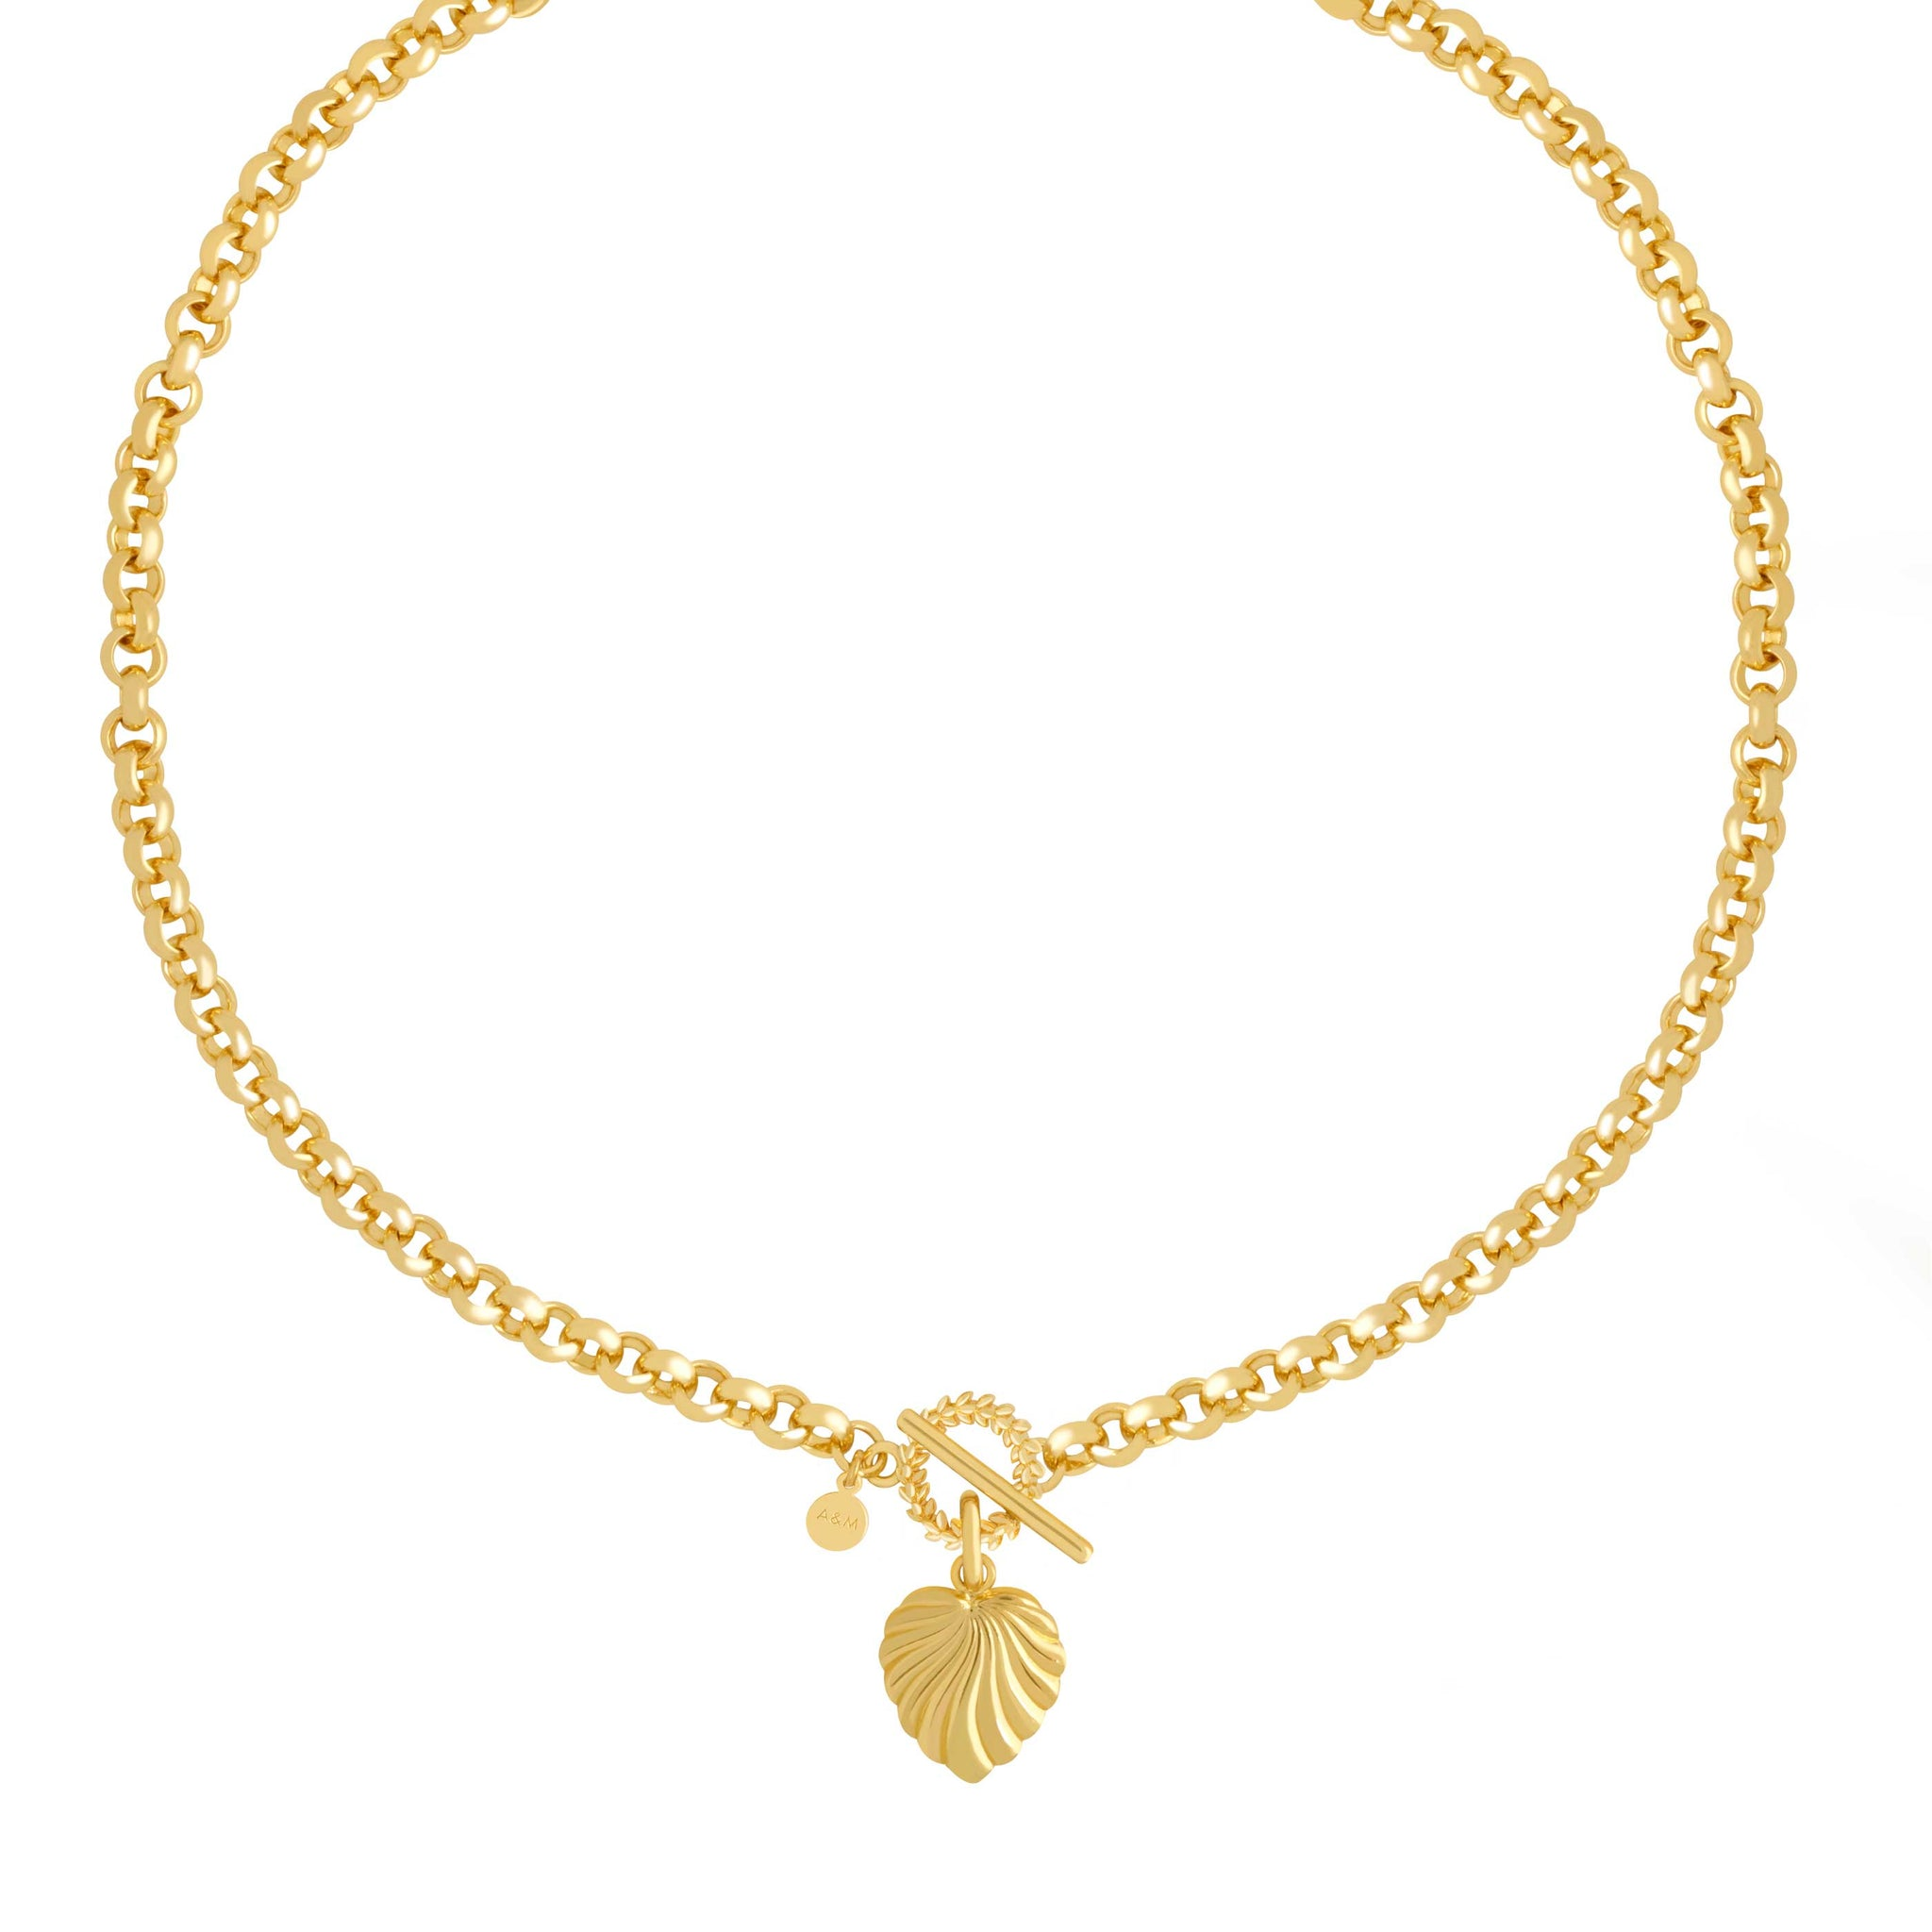 Wreath T-Bar Chunky Necklace in Gold